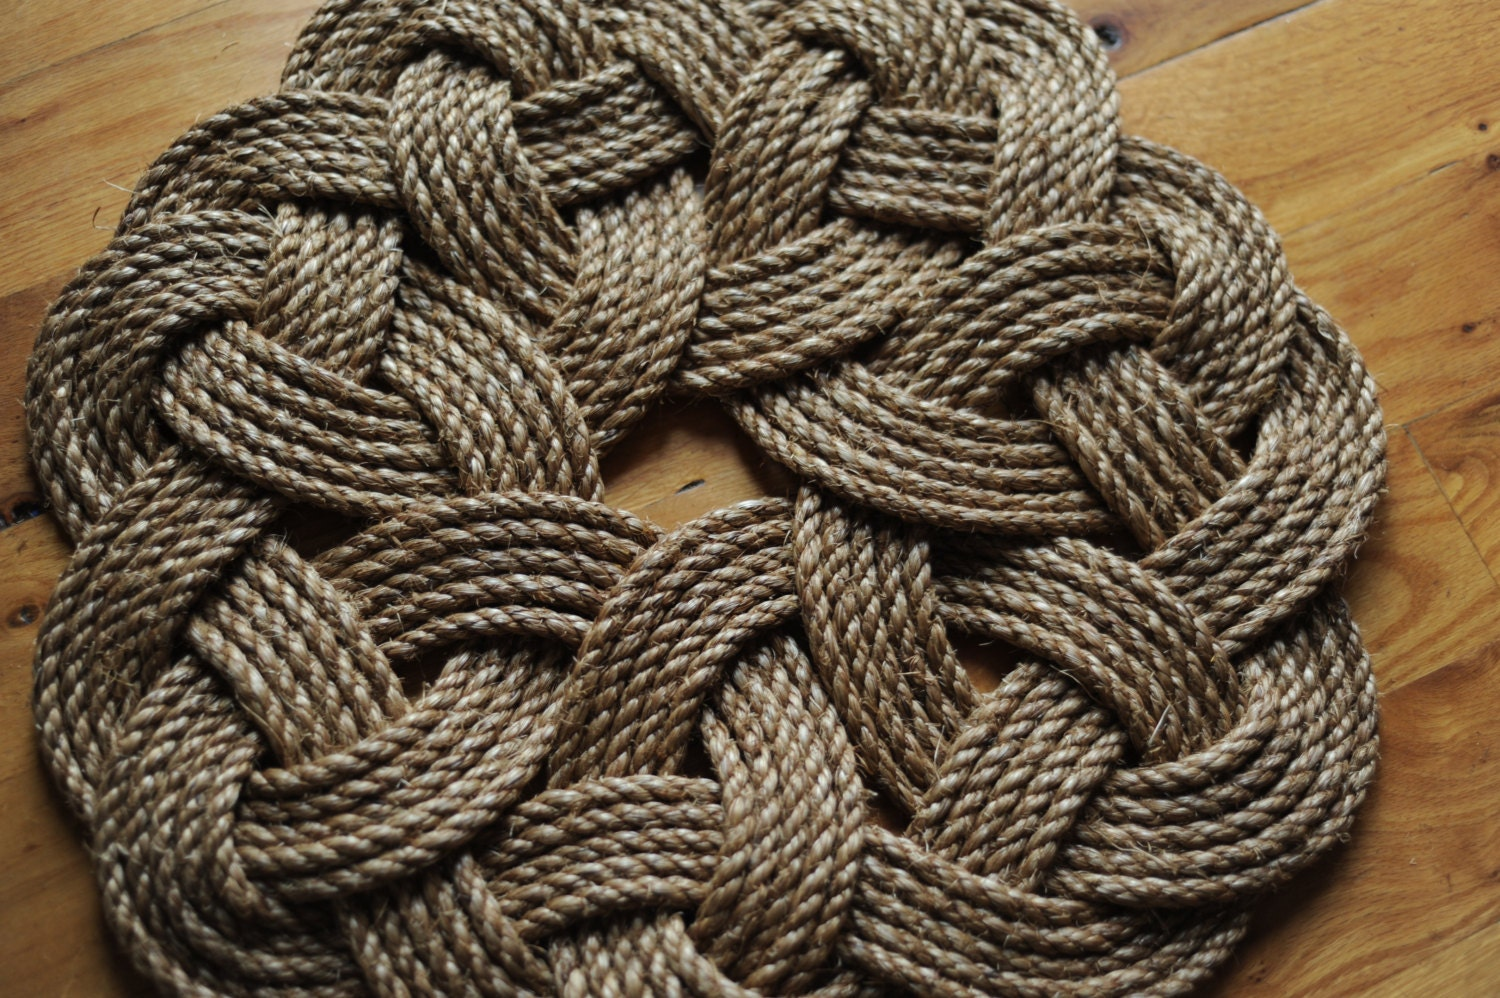 Kringle mat nautical decor smal rope rug manila rope by oyknot for Rope carpet